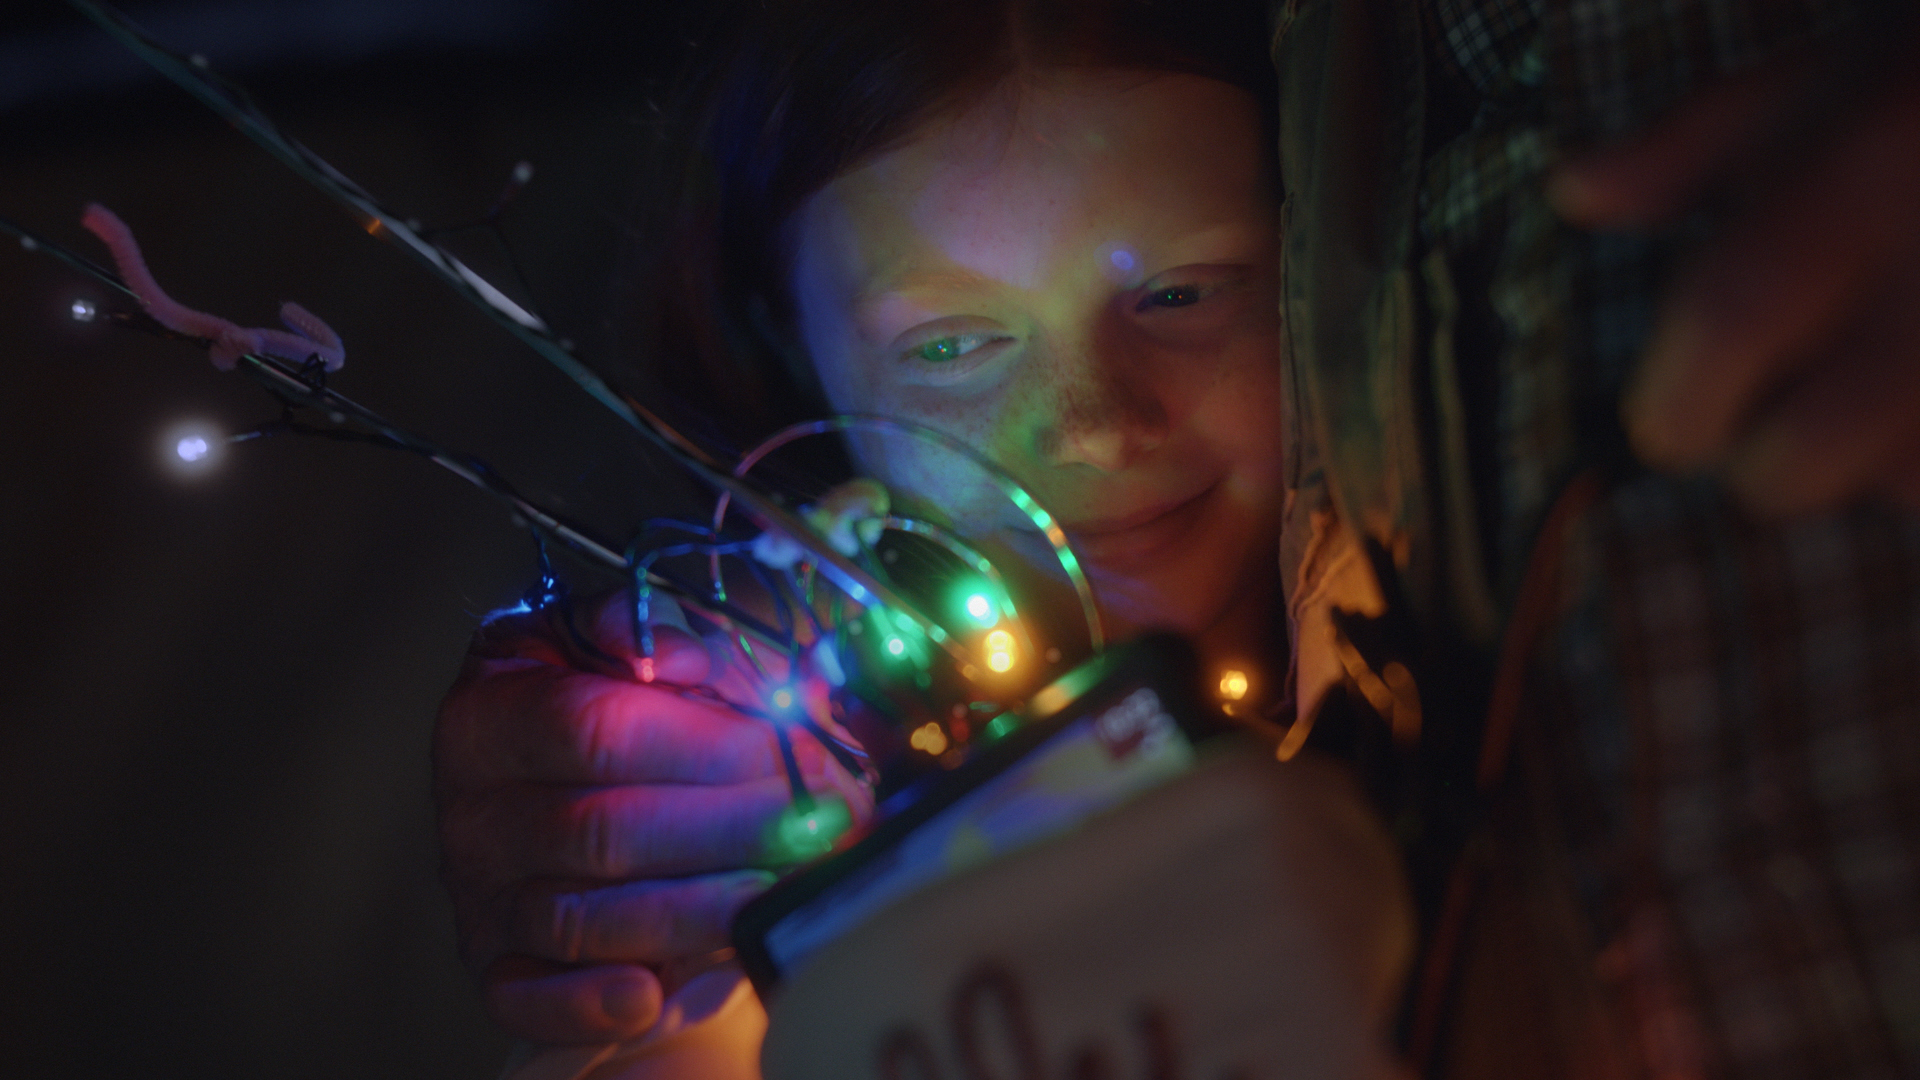 Myer launches new 'Christmas is where we are' campaign and innovative Myer Global Positioning Stocking via Clemenger BBDO Melbourne